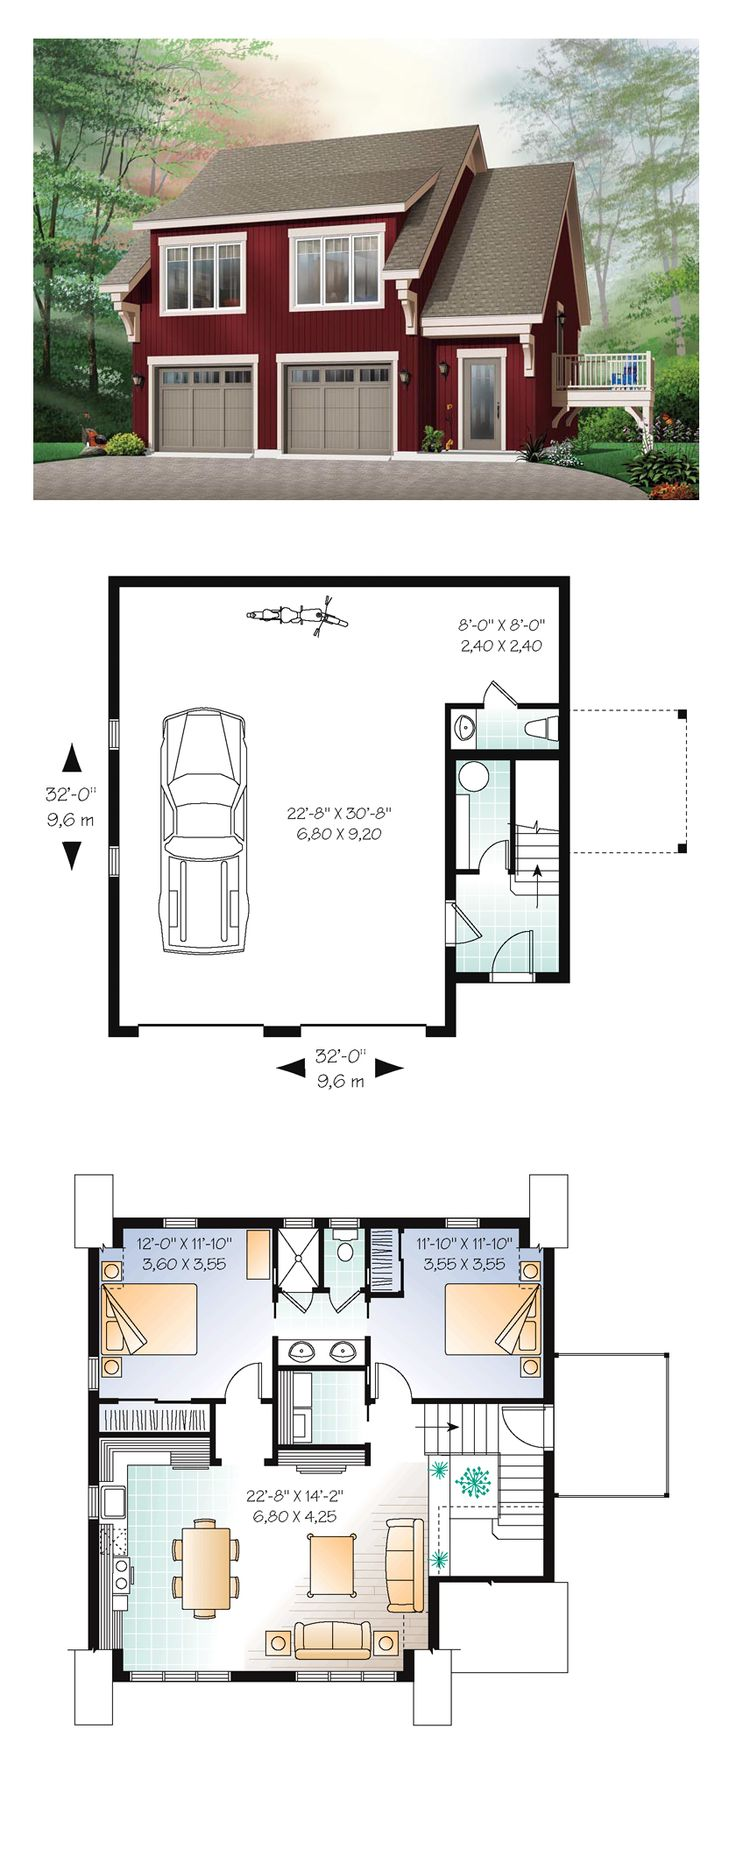 Garage Apartment Plan 64817   Total Living Area  1068 sq  ft   2. Best 25  Garage apartment plans ideas on Pinterest   Garage house